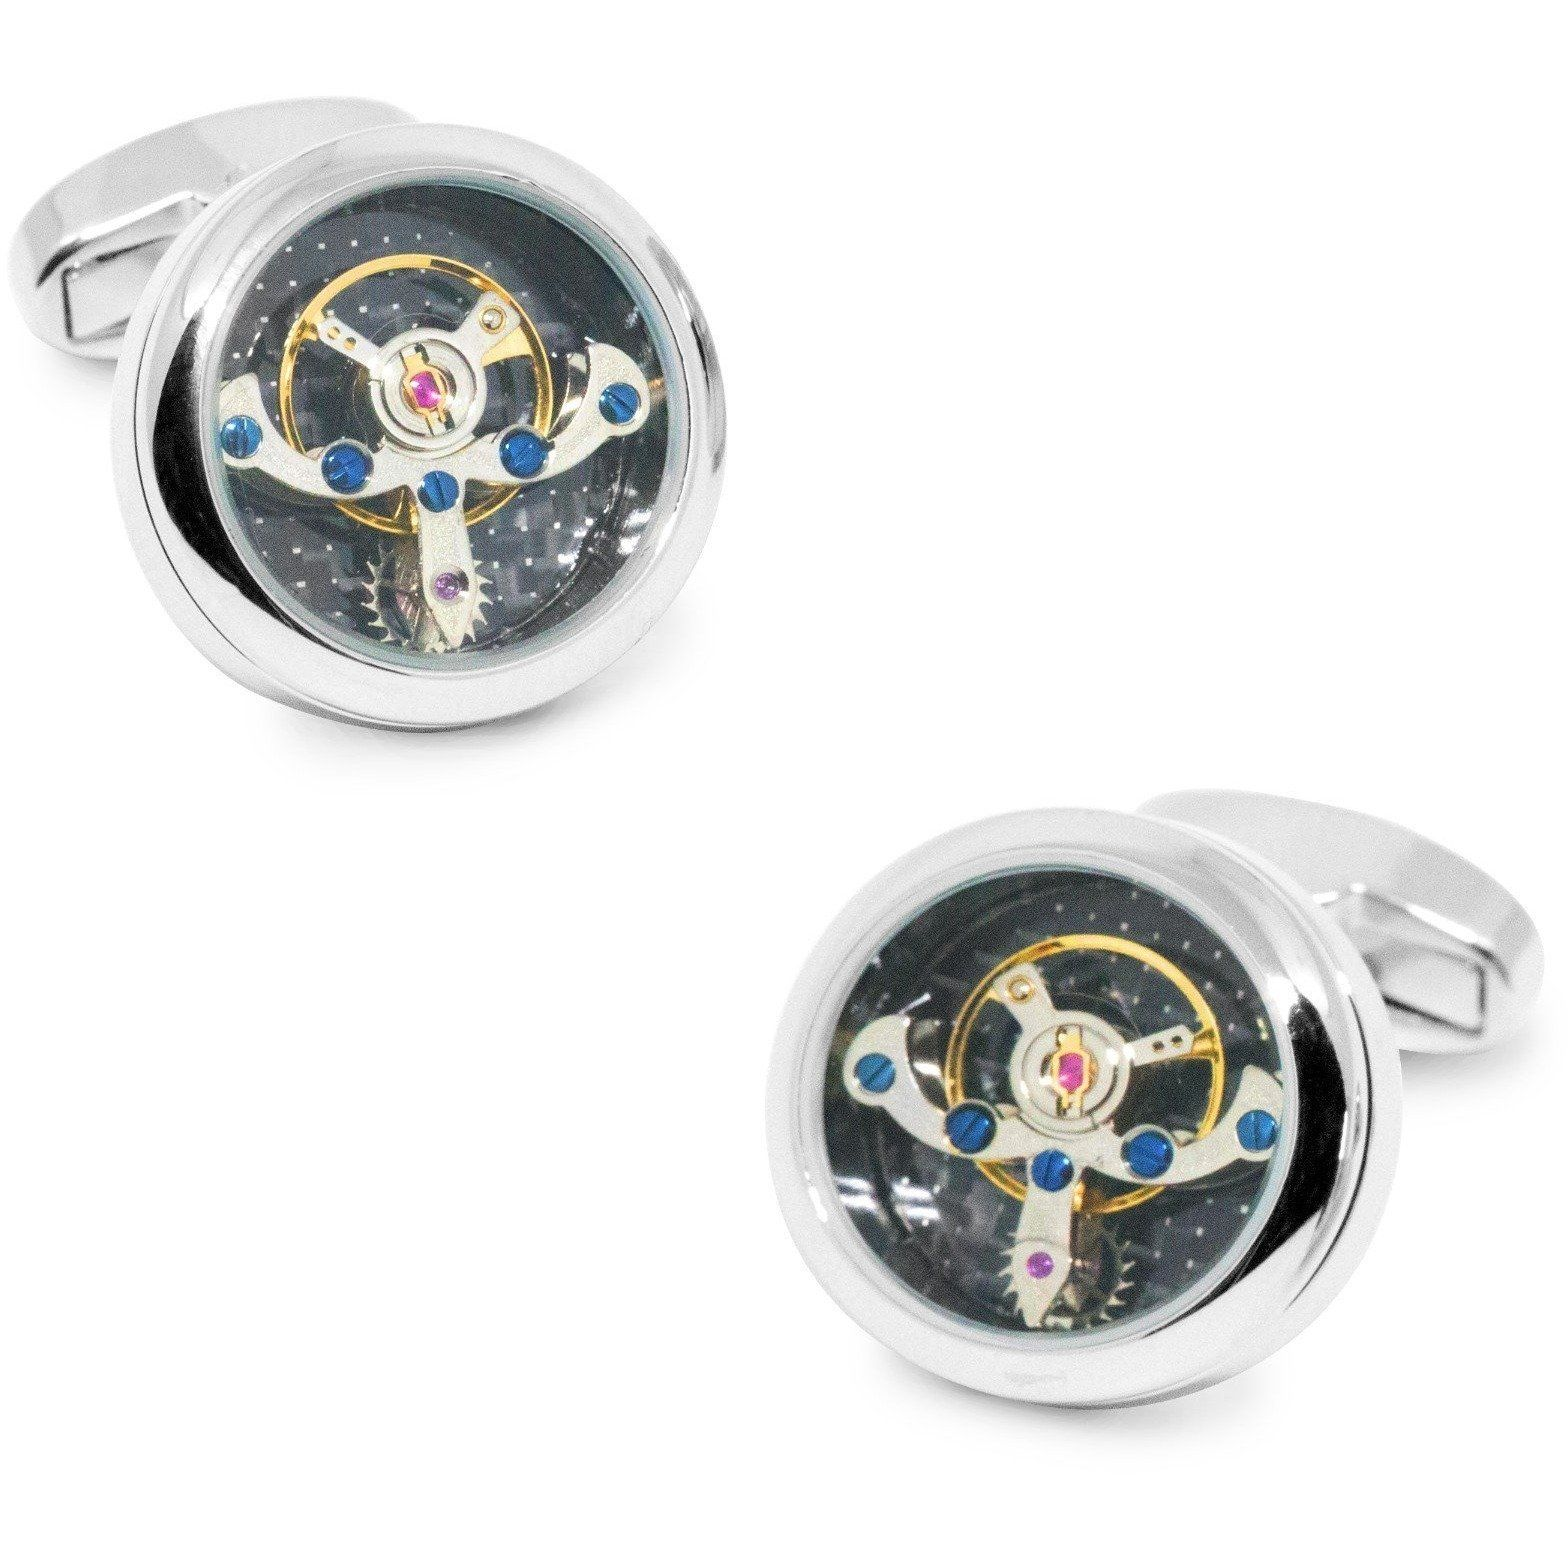 Tourbillon Watch Movement Cufflinks in Silver with Black Face, Novelty Cufflinks, Cuffed.com.au, CL5582, $72.00